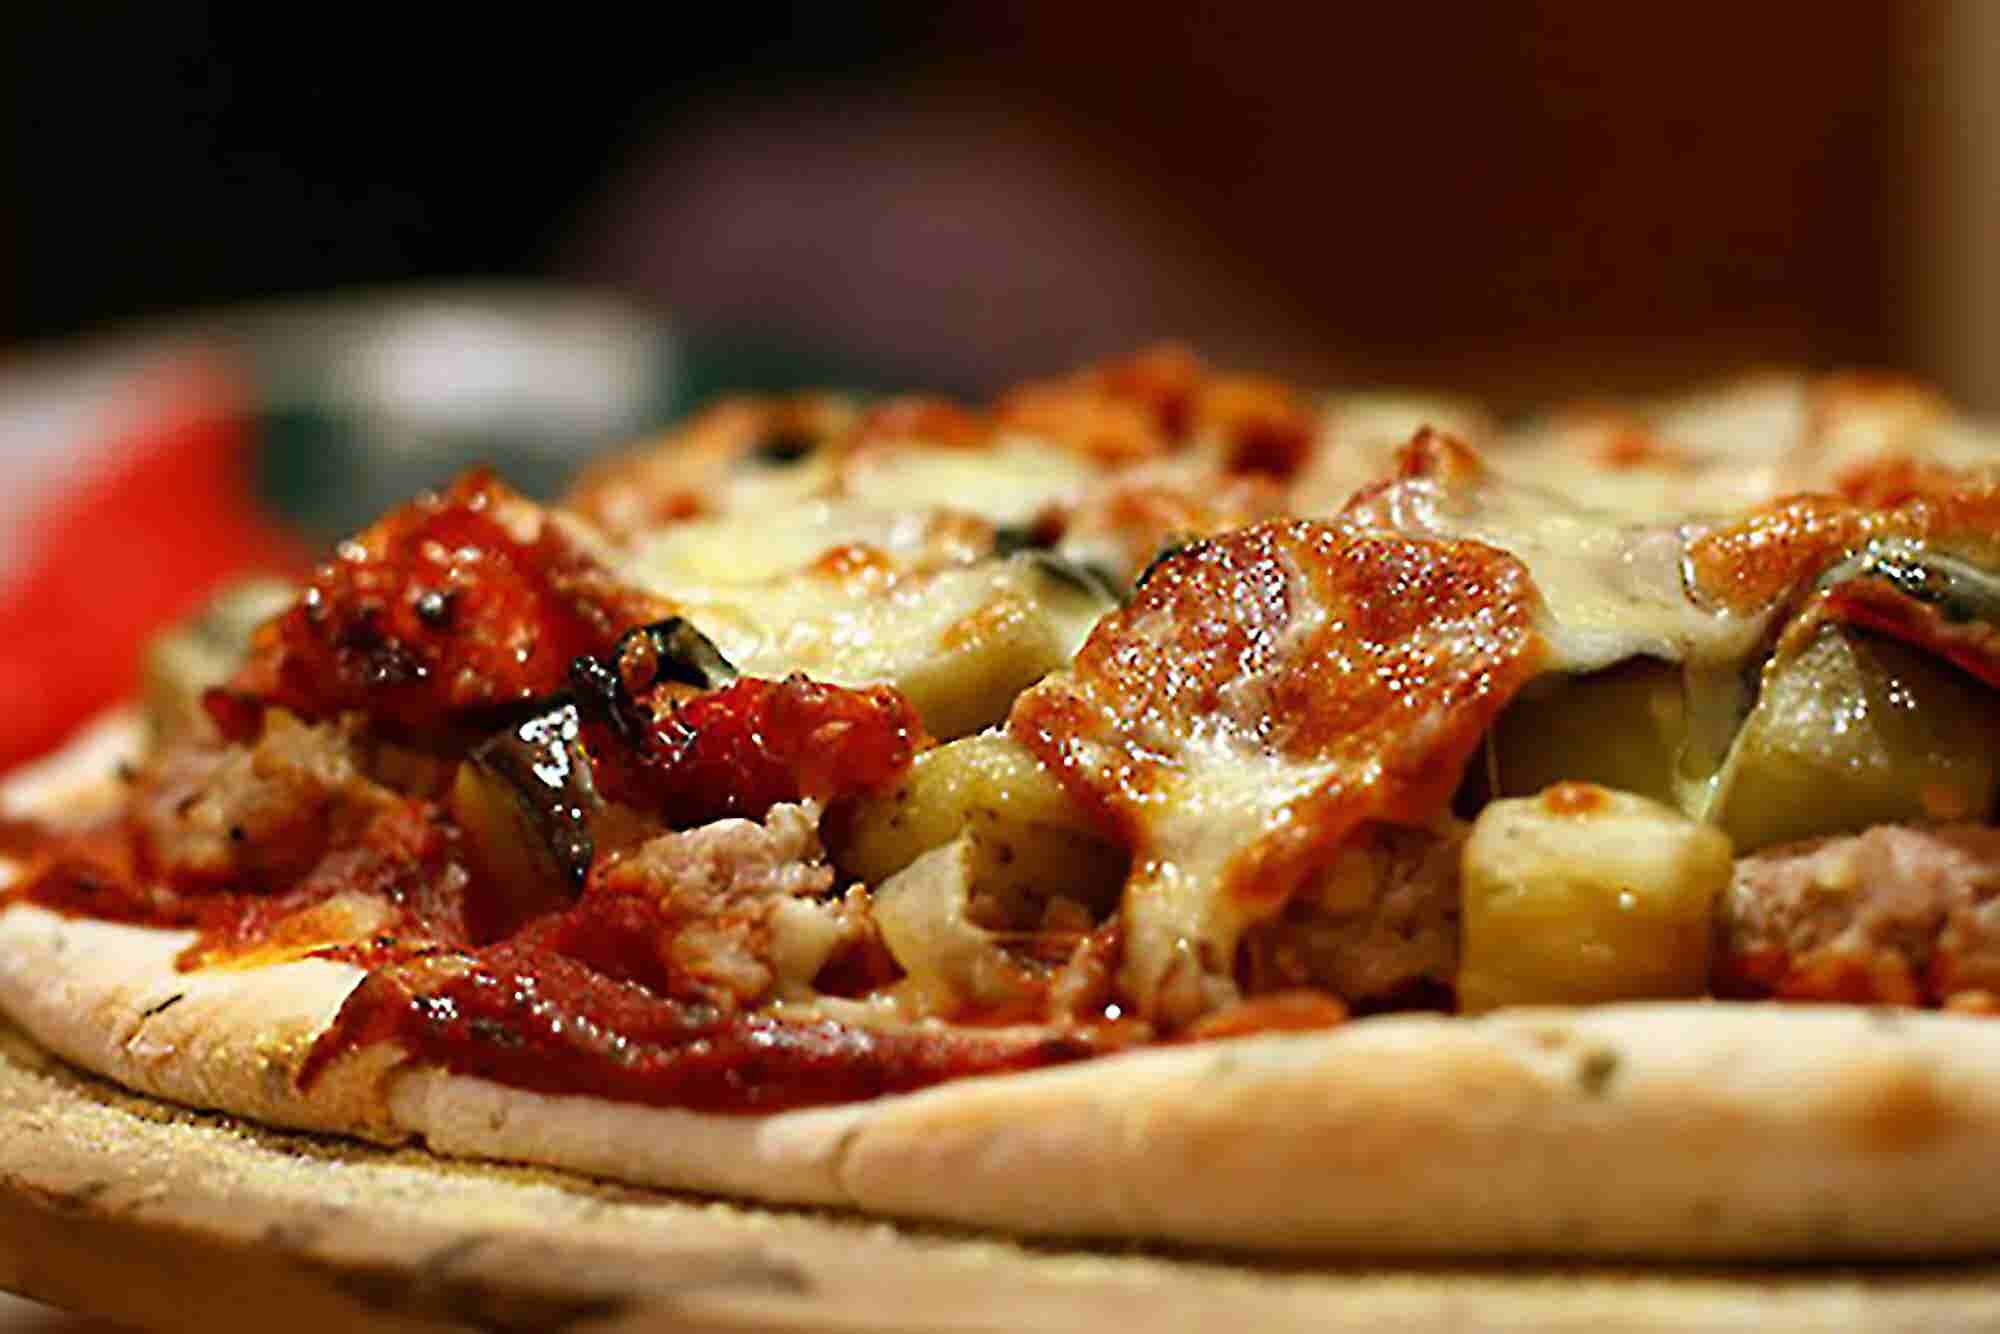 Chipotle, Subway Want a Slice of the Fast-Casual Pizza Business